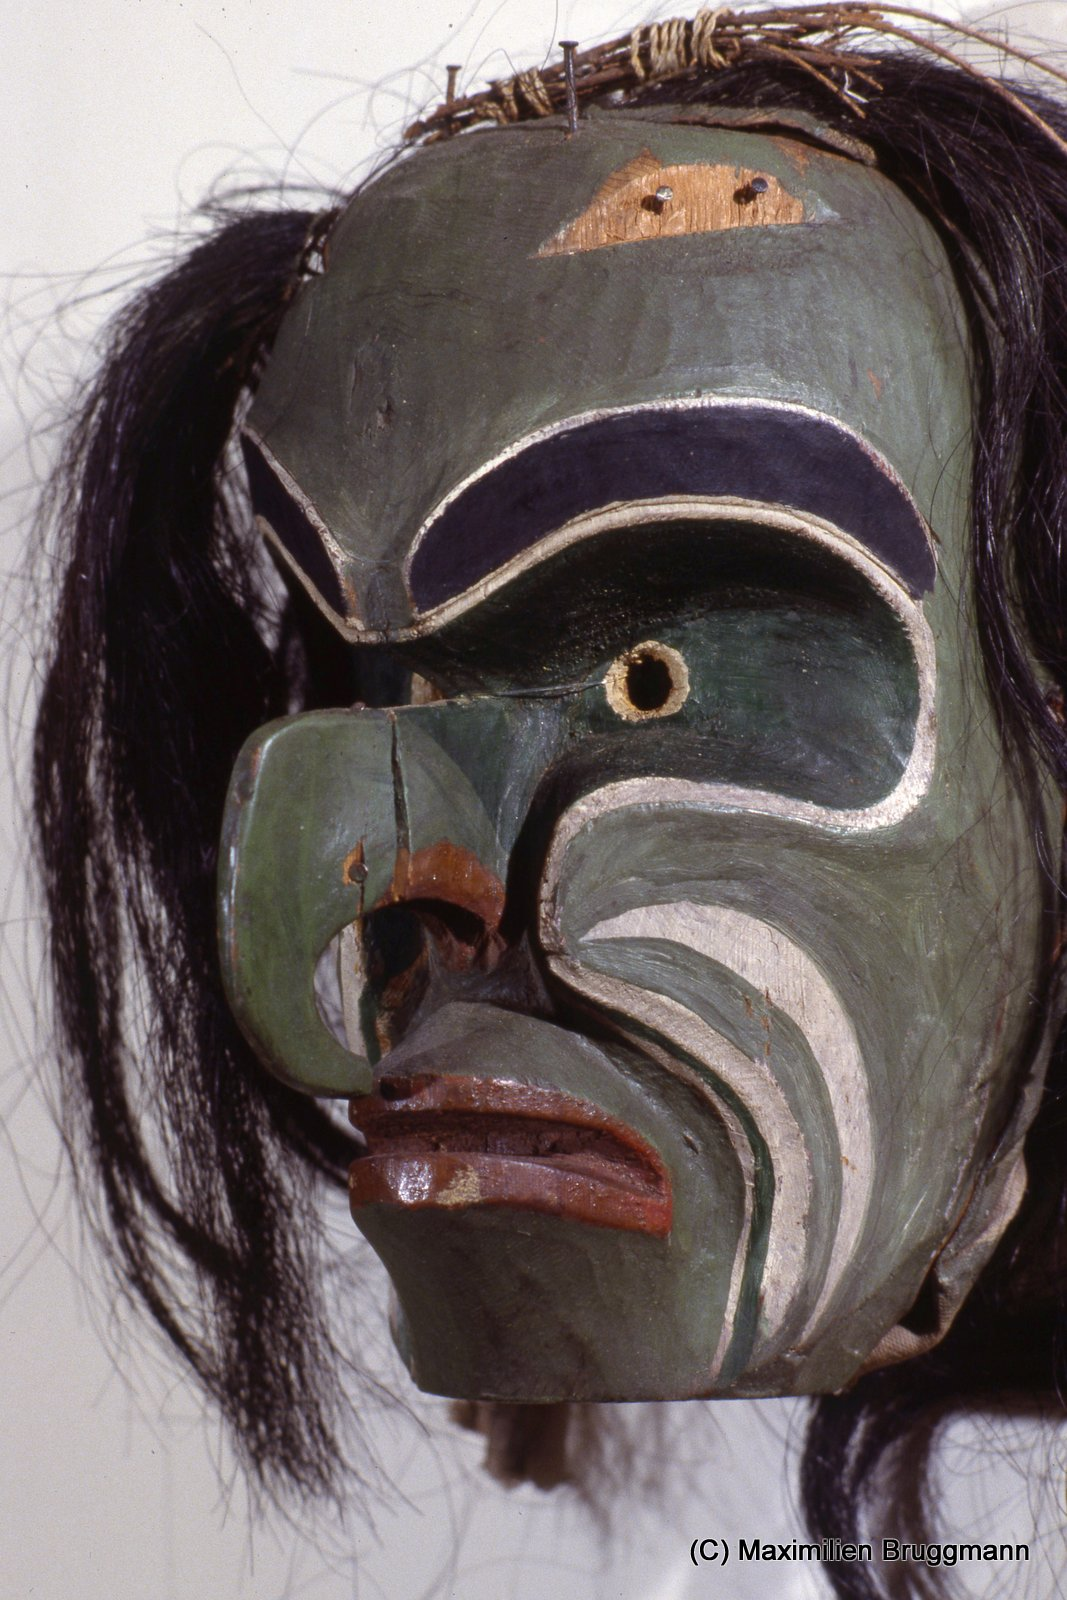 p135. The Lekwiltok Kwakiutl mask represents Bookwus, the wild forest monster.The animal-like earsare missing from the forehead. Confiscated 1n 1922, along with other potlatch goods, the mask was returned 1n 1979 to the new Kwakiutl museum in Quathiaski Cove, located on Quadra Island, British Columbia.